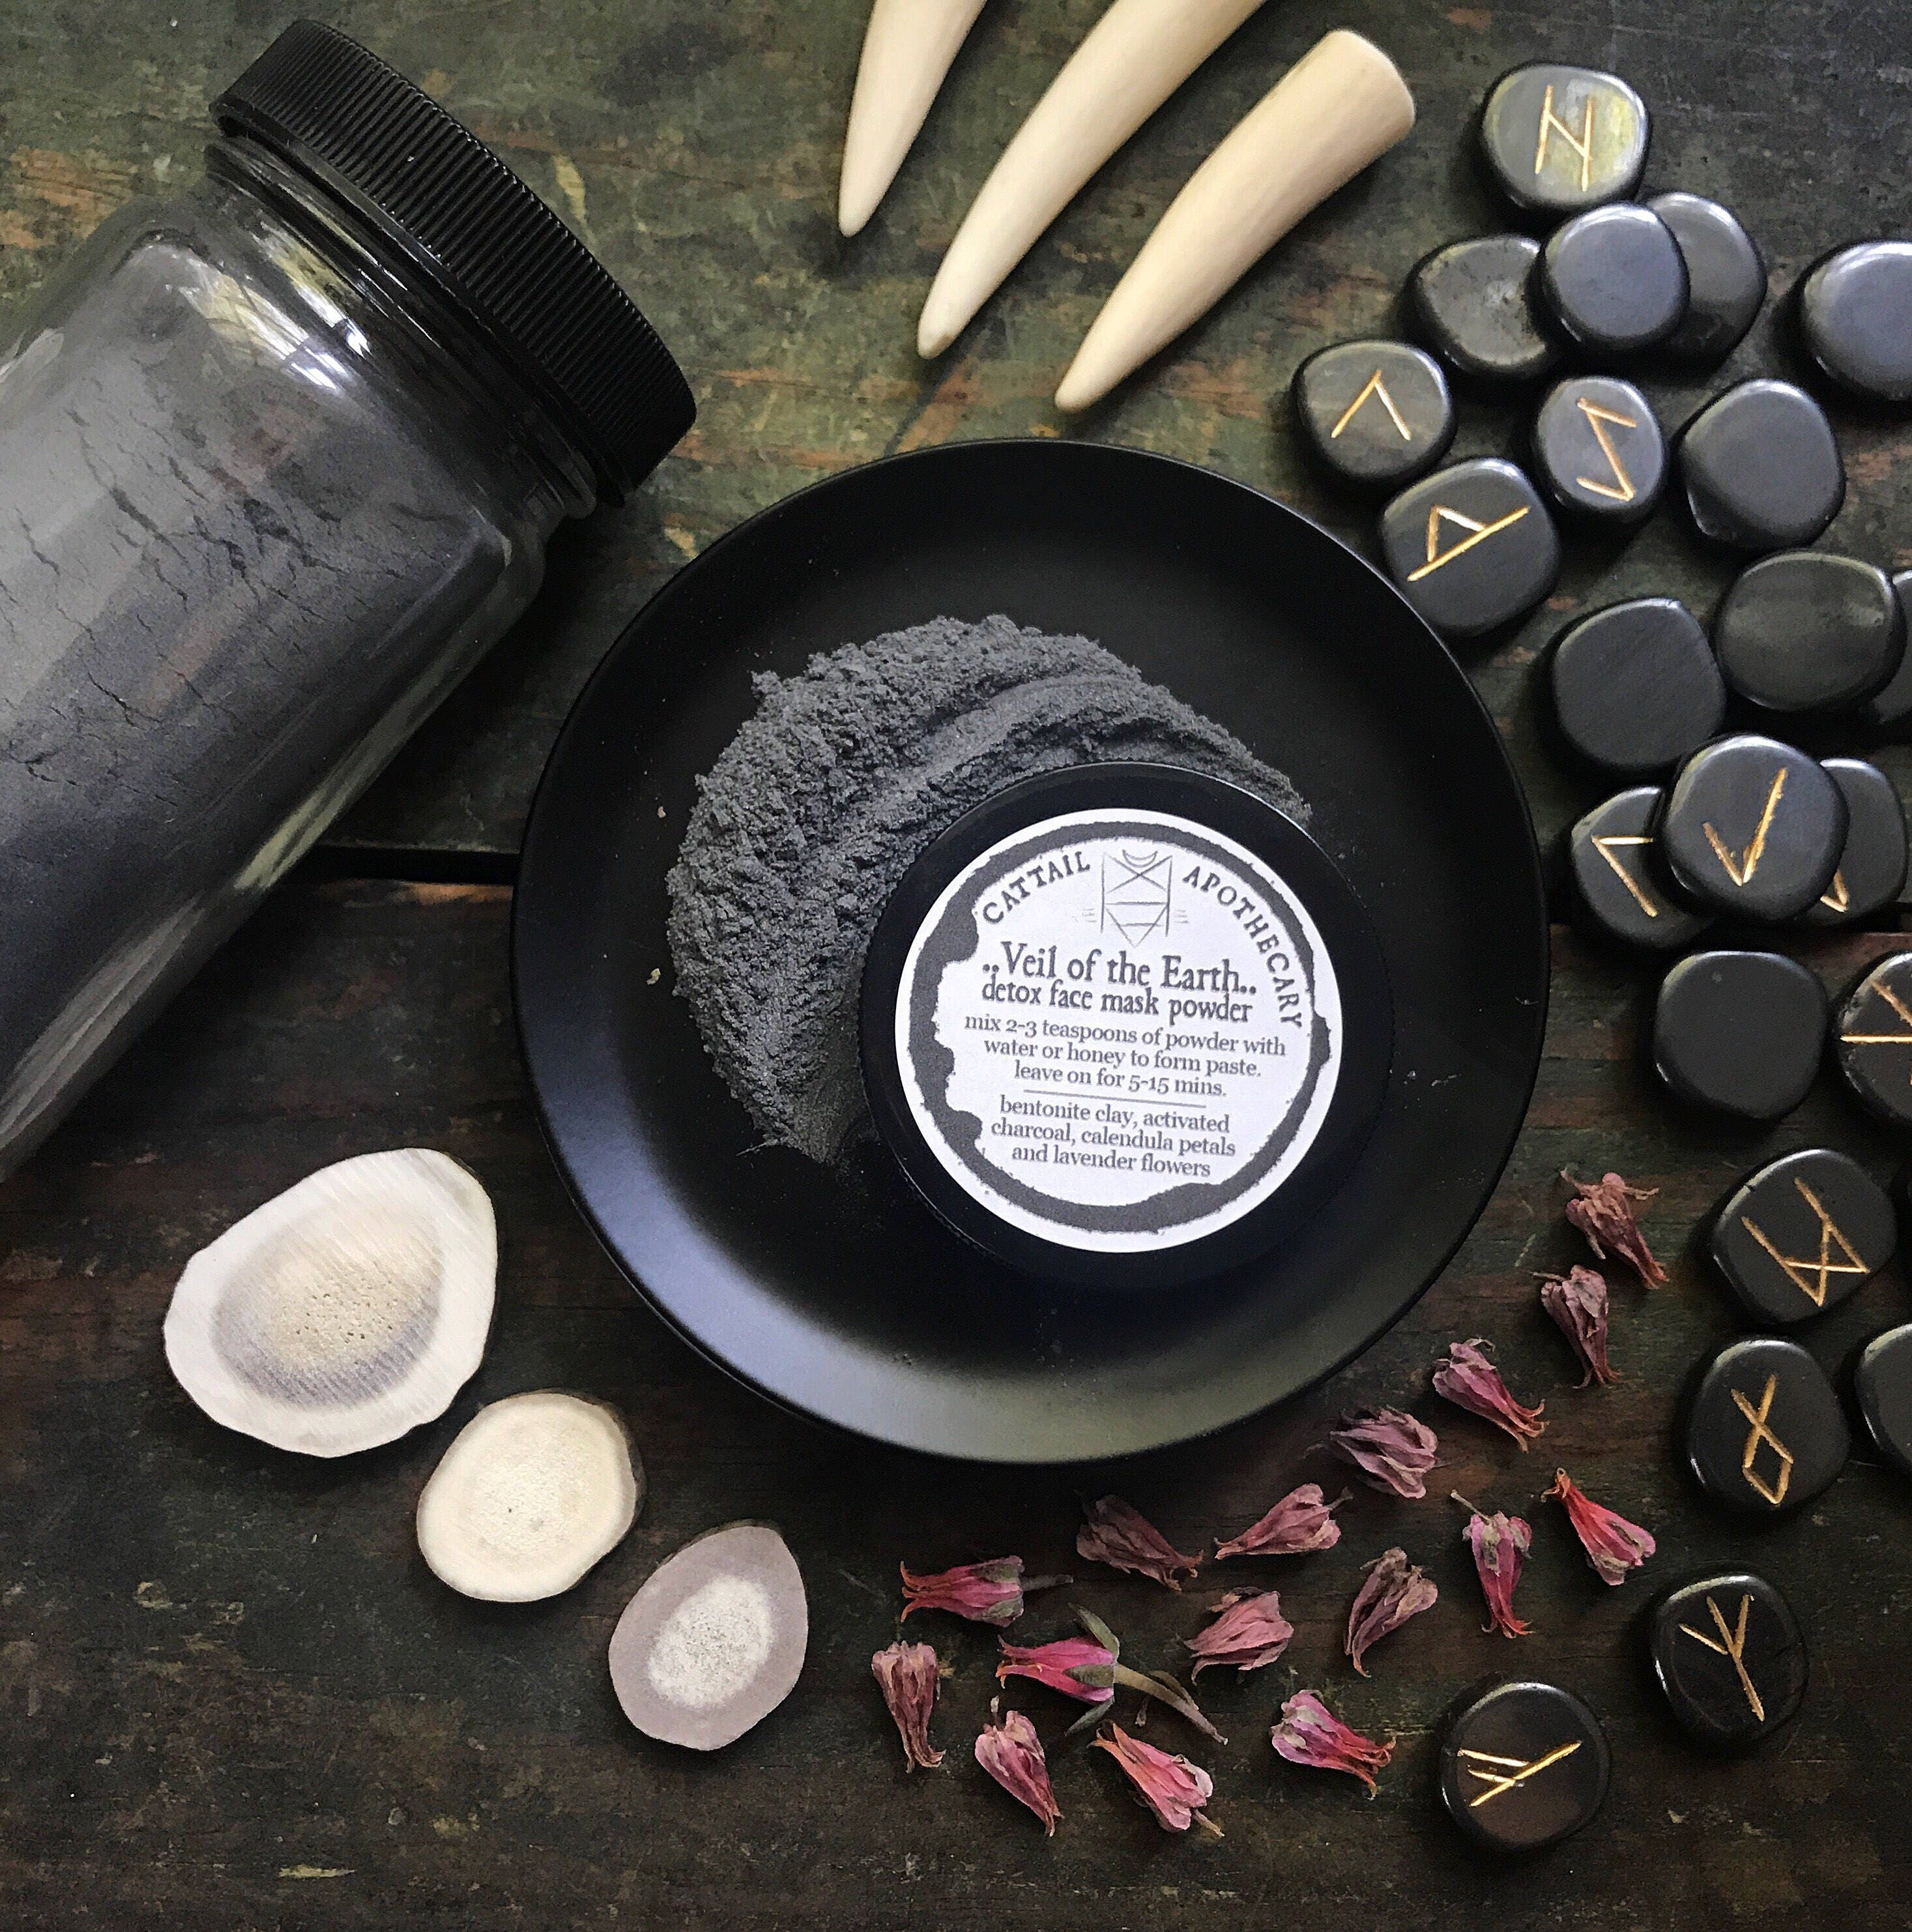 Diy Charcoal Face Mask For Acne Prone Skin: Charcoal Detox Face Mask Powder / Acne Treatment / Bentonite